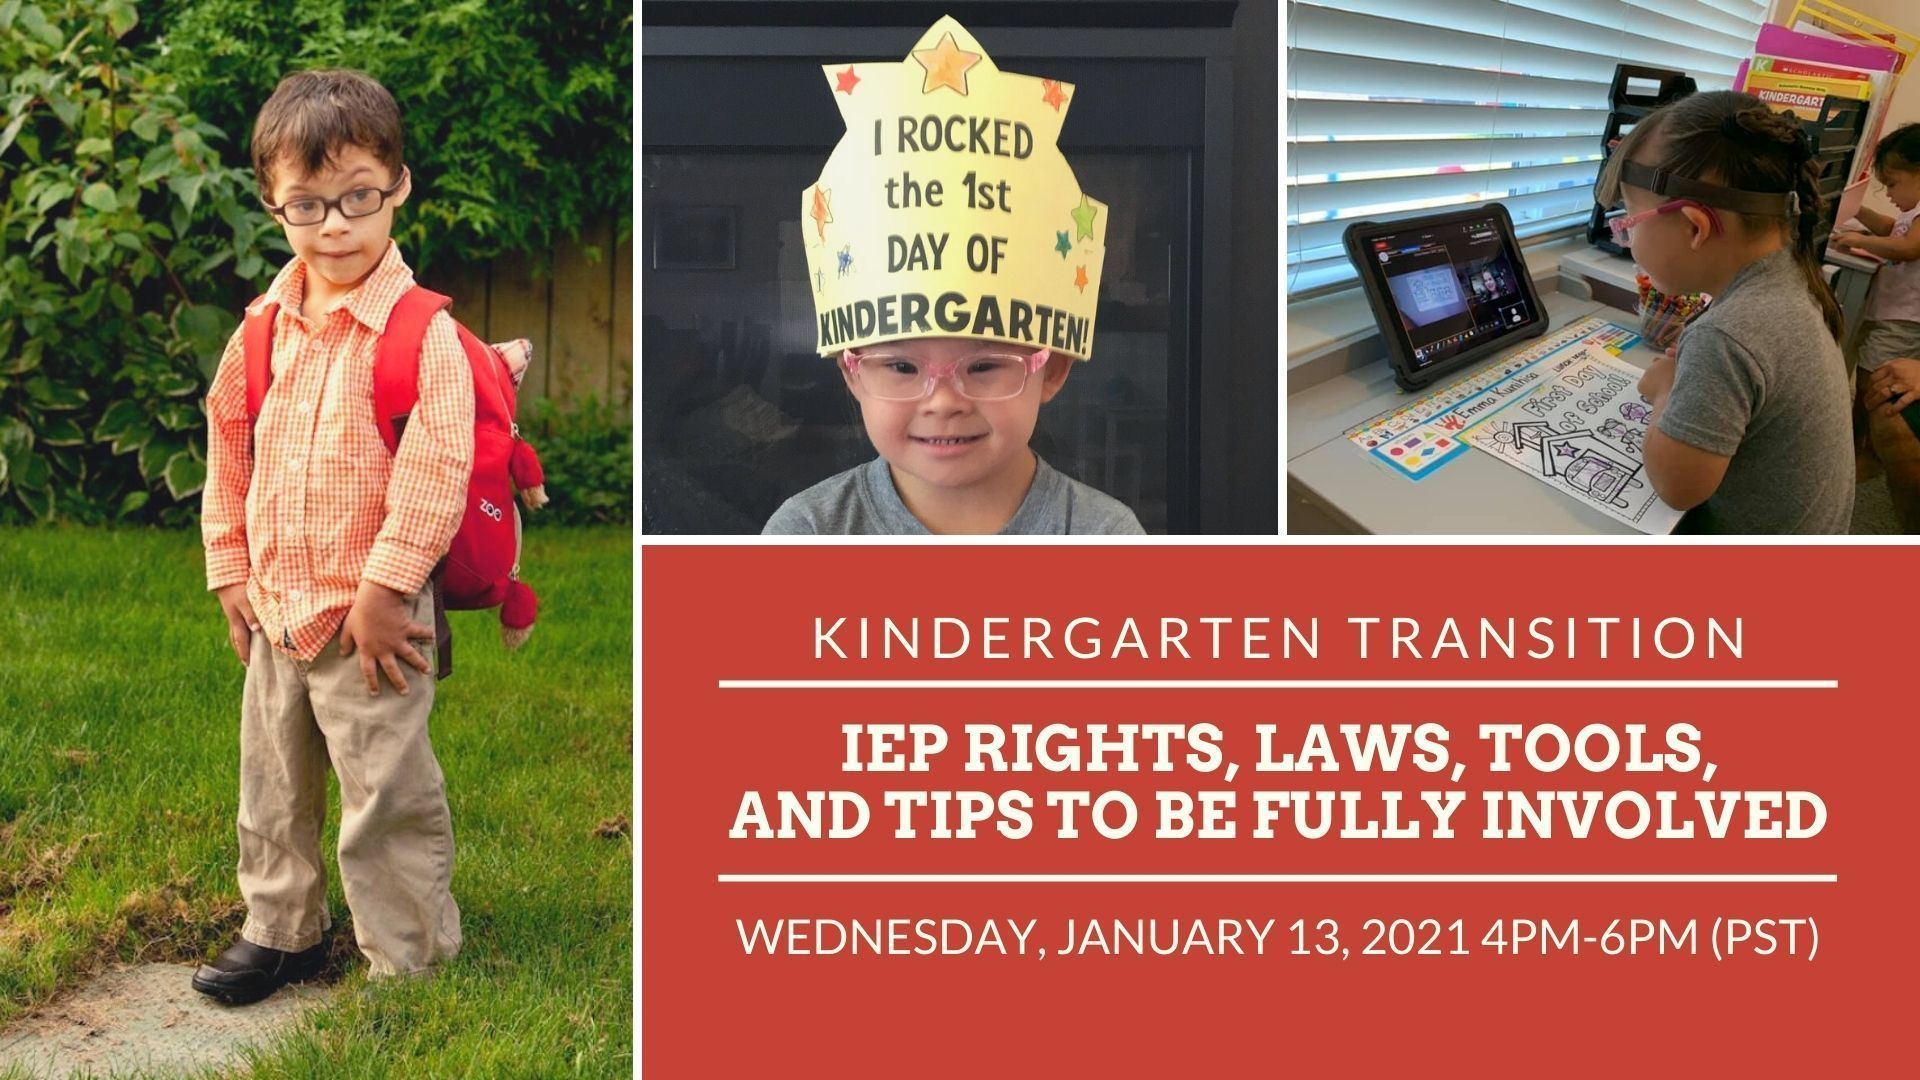 Kindergarten Transition: IEP Rights, laws, tools, and tips to be fully involved (Desplácese hacia abajo para obtener traducción en español)